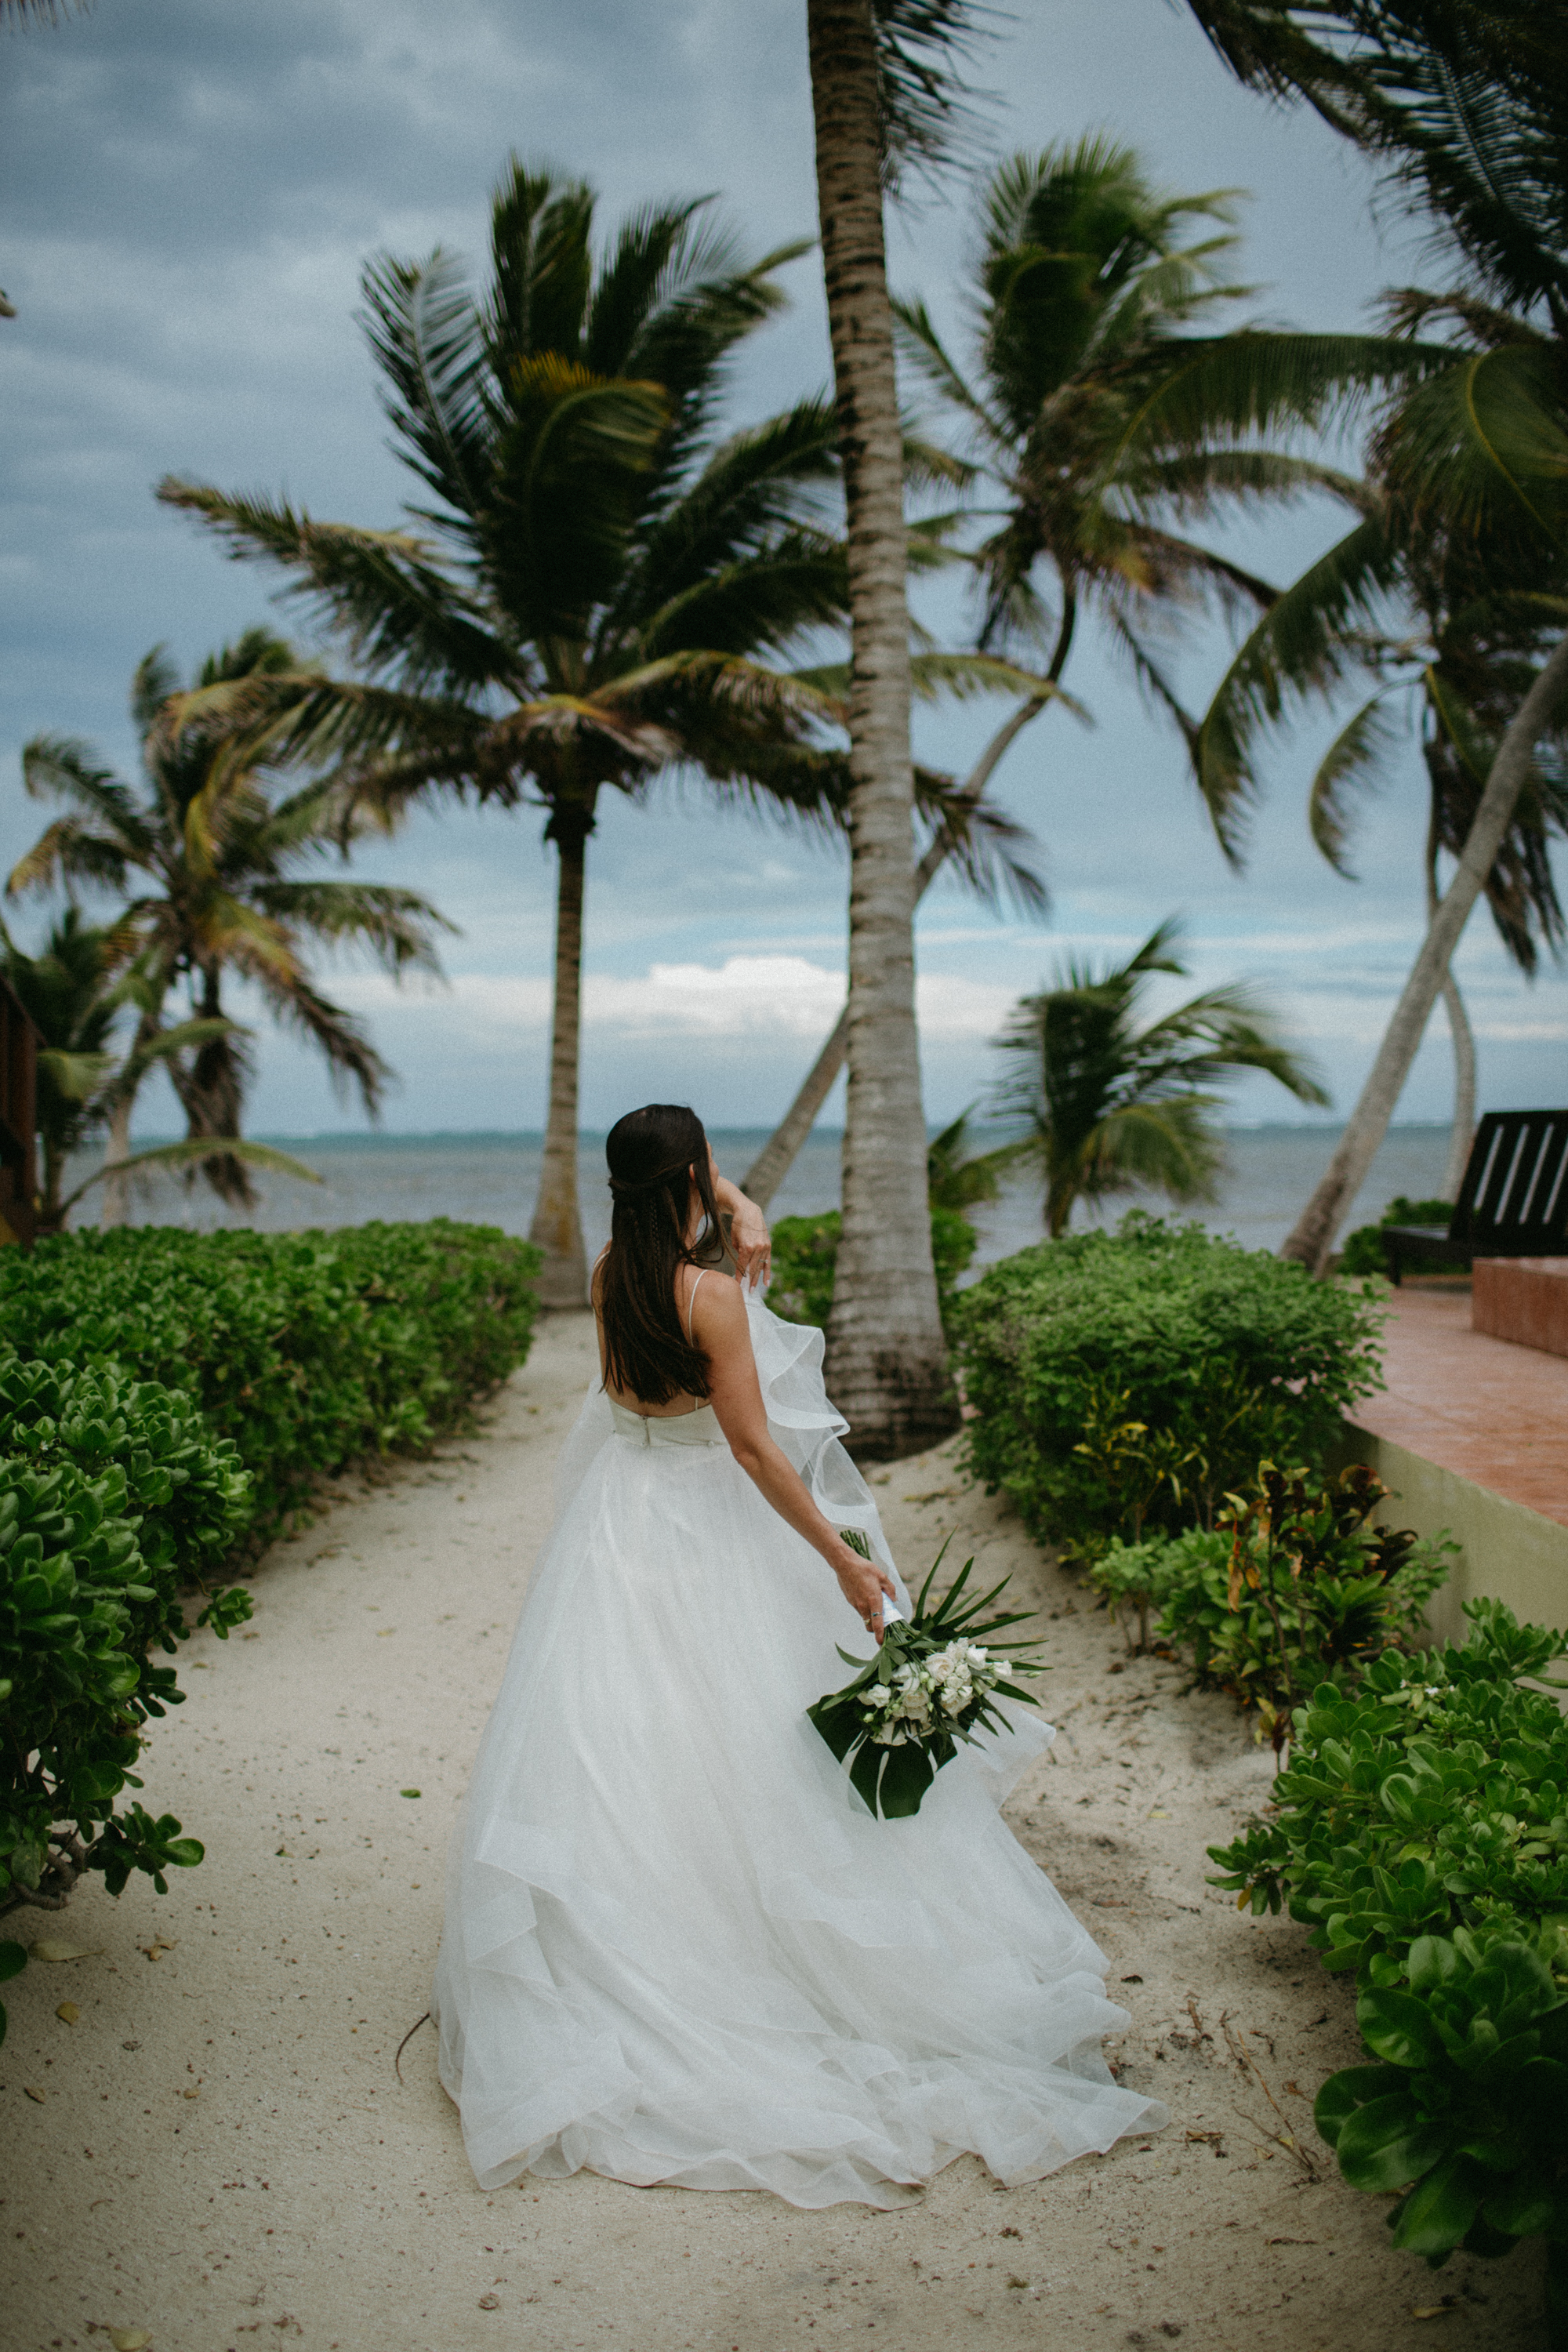 san-pescador-belize-wedding-christinemariephoto-j-k-62.jpg